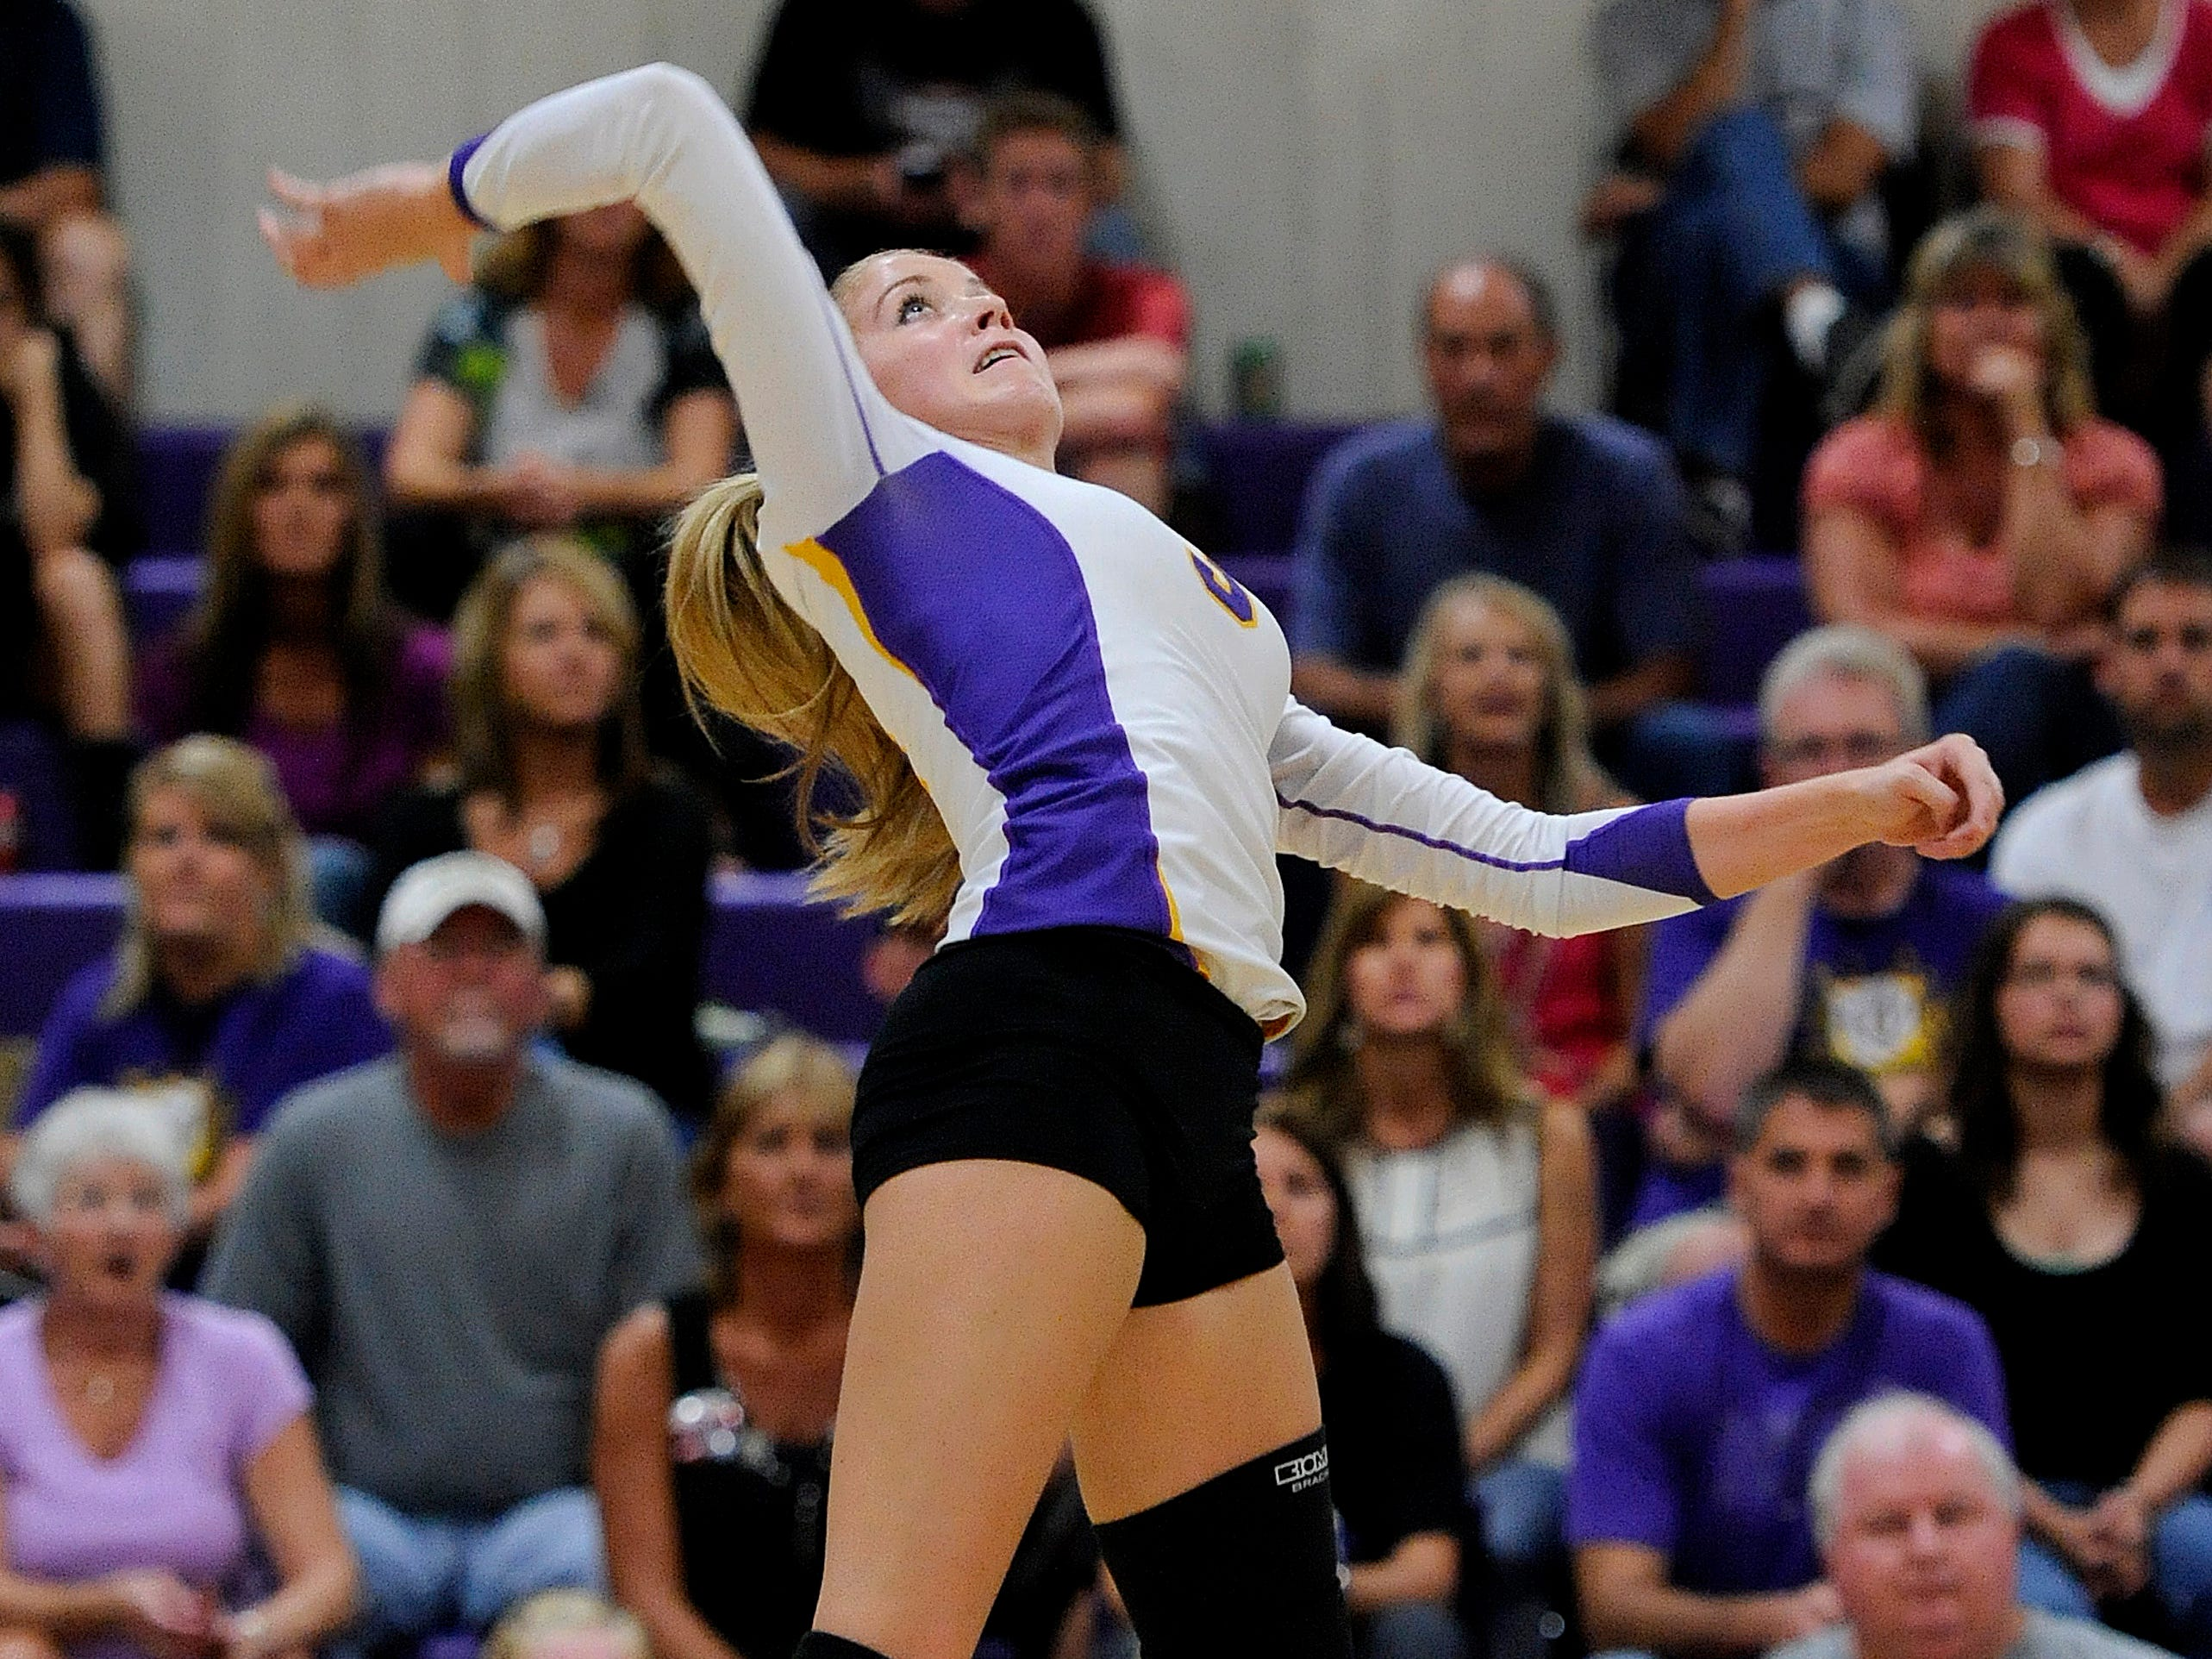 Unioto's Alexis Overly jumps into the air to spike the ball during Thursday's nonleague match against Logan Elm.